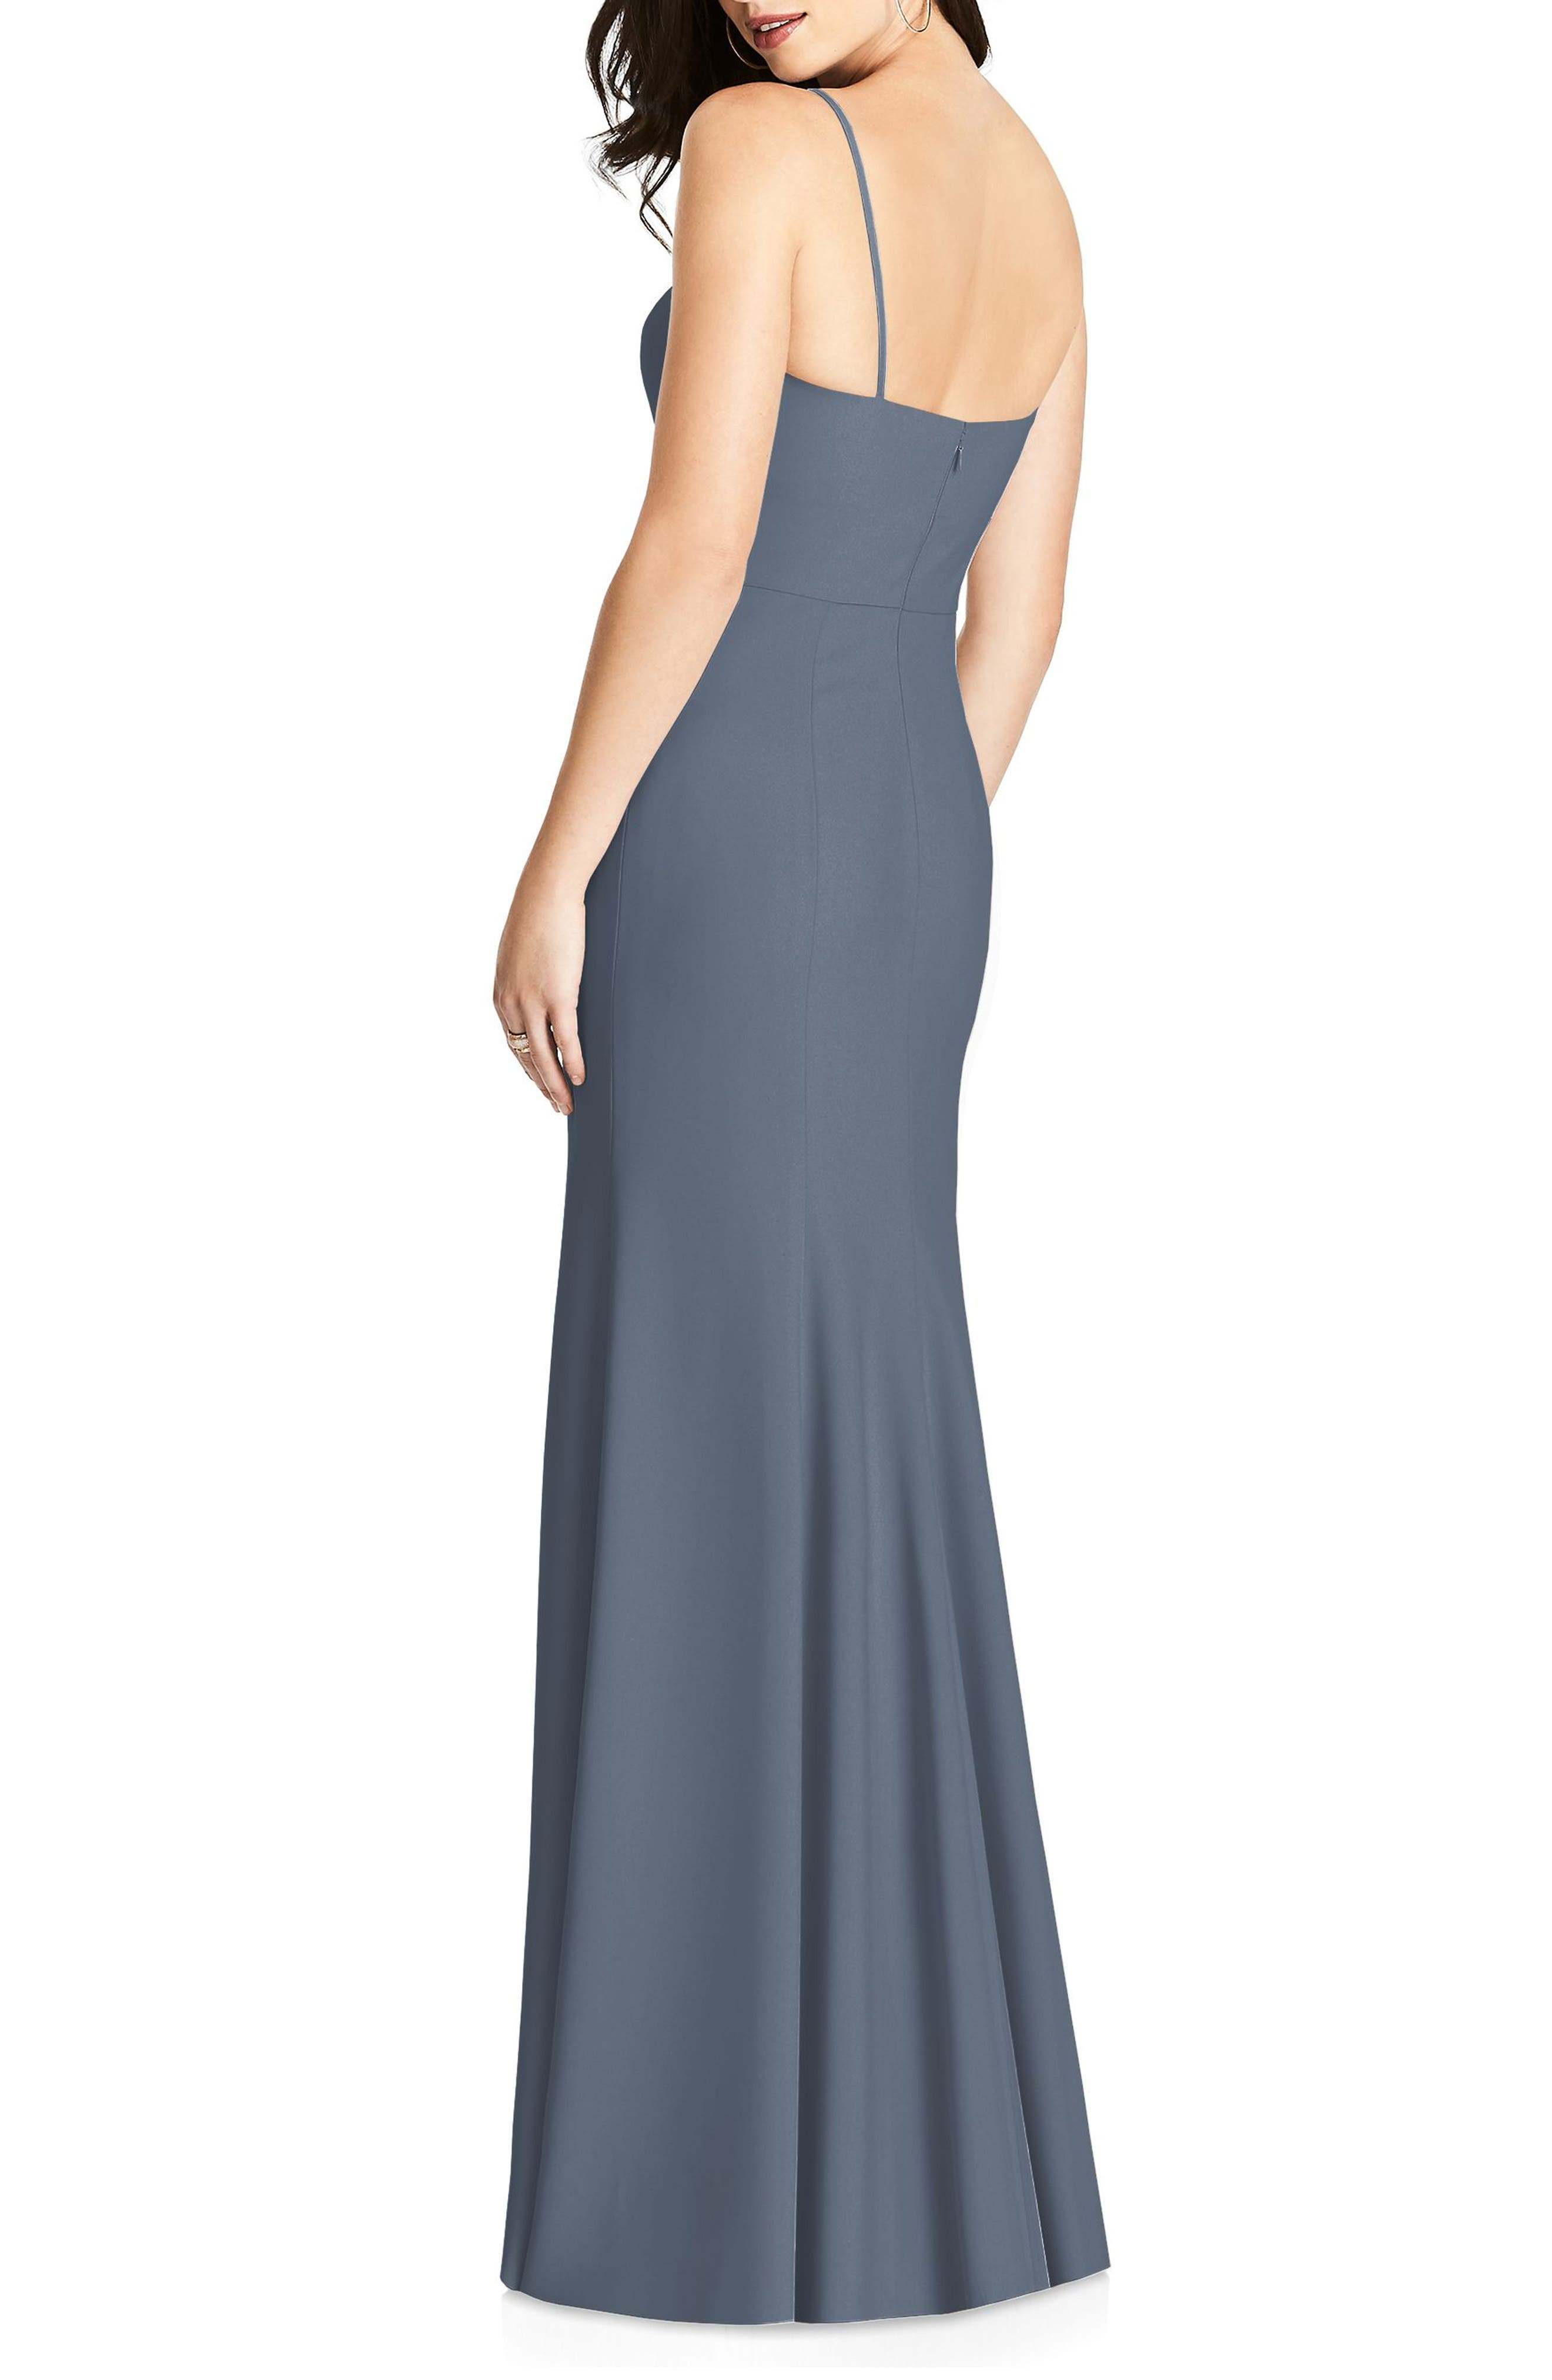 DESSY COLLECTION, Crisscross Seam Crepe Gown, Alternate thumbnail 2, color, SILVERSTONE